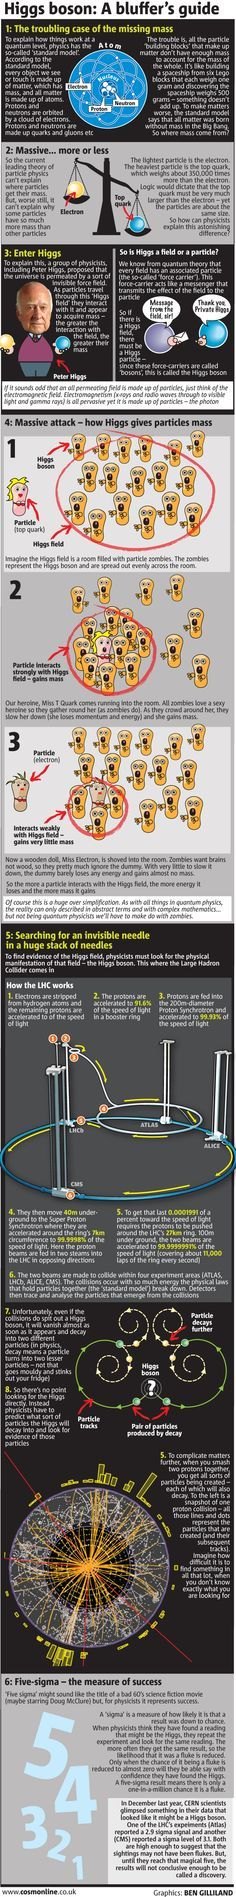 Infographic: Everything you need to know about the Higgs Though I think the part about zombies is a little much ...